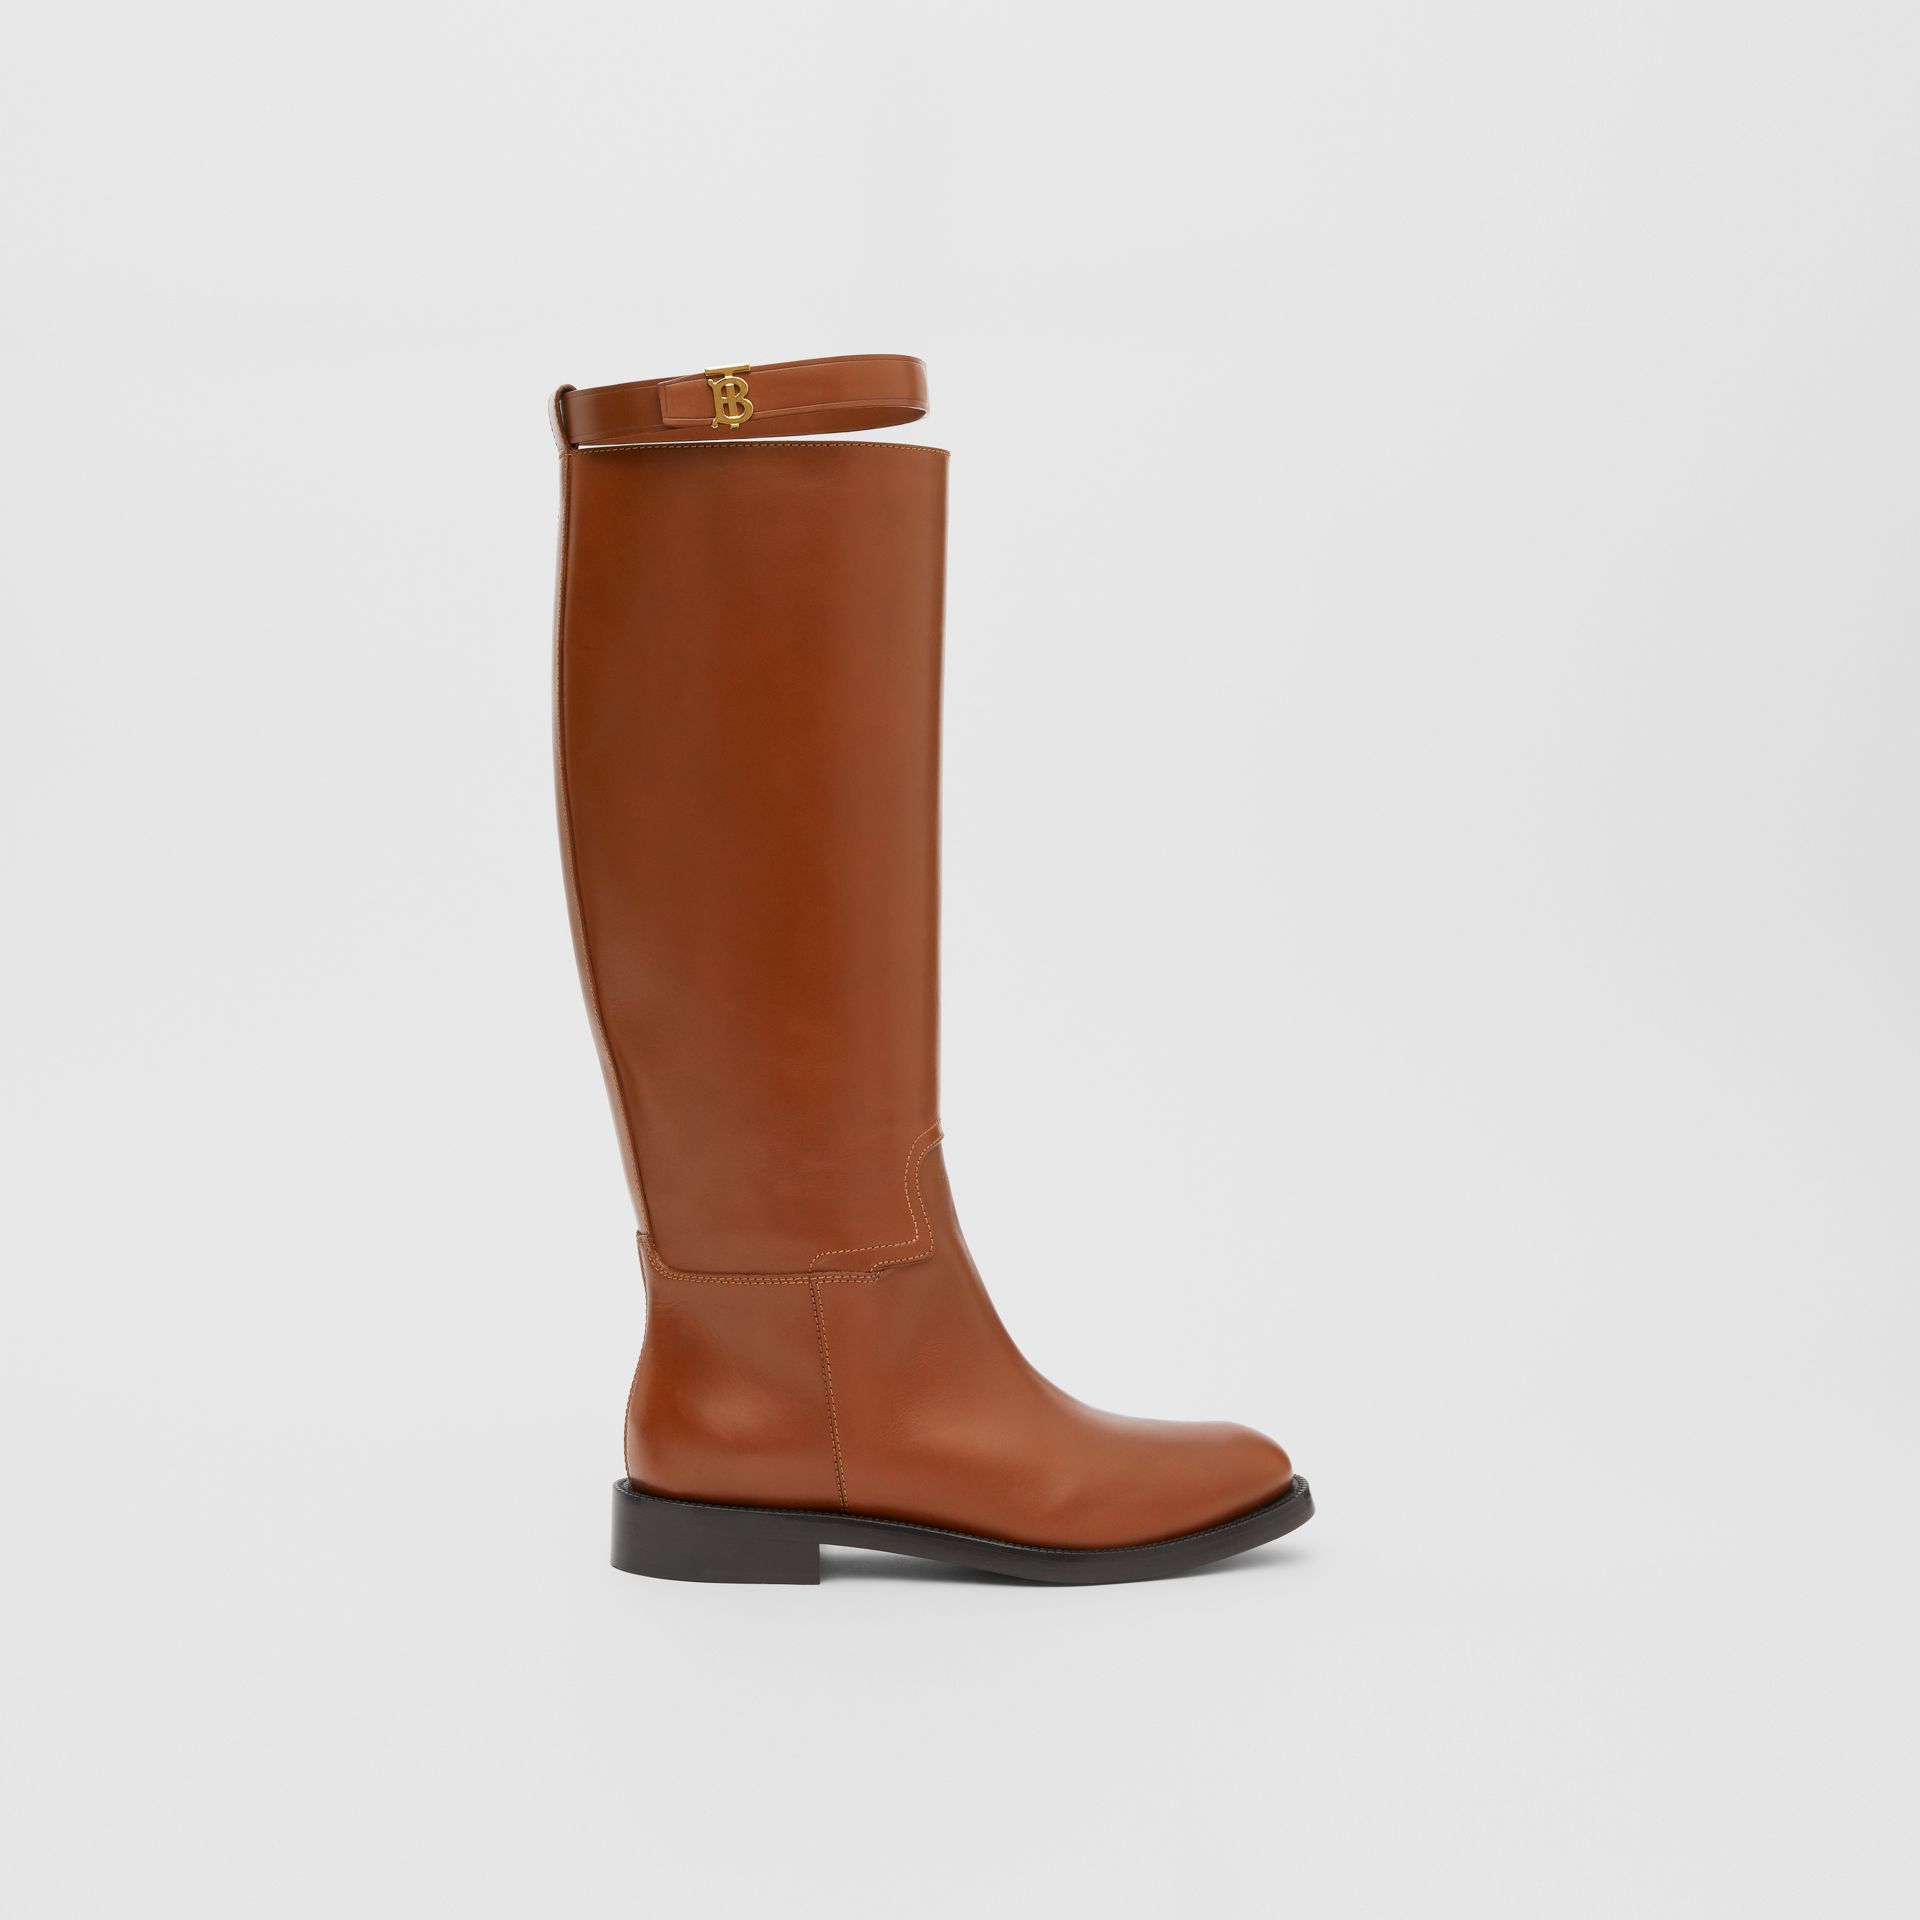 Monogram Motif Leather Knee-high Boots in Tan - Women | Burberry United Kingdom - gallery image 4